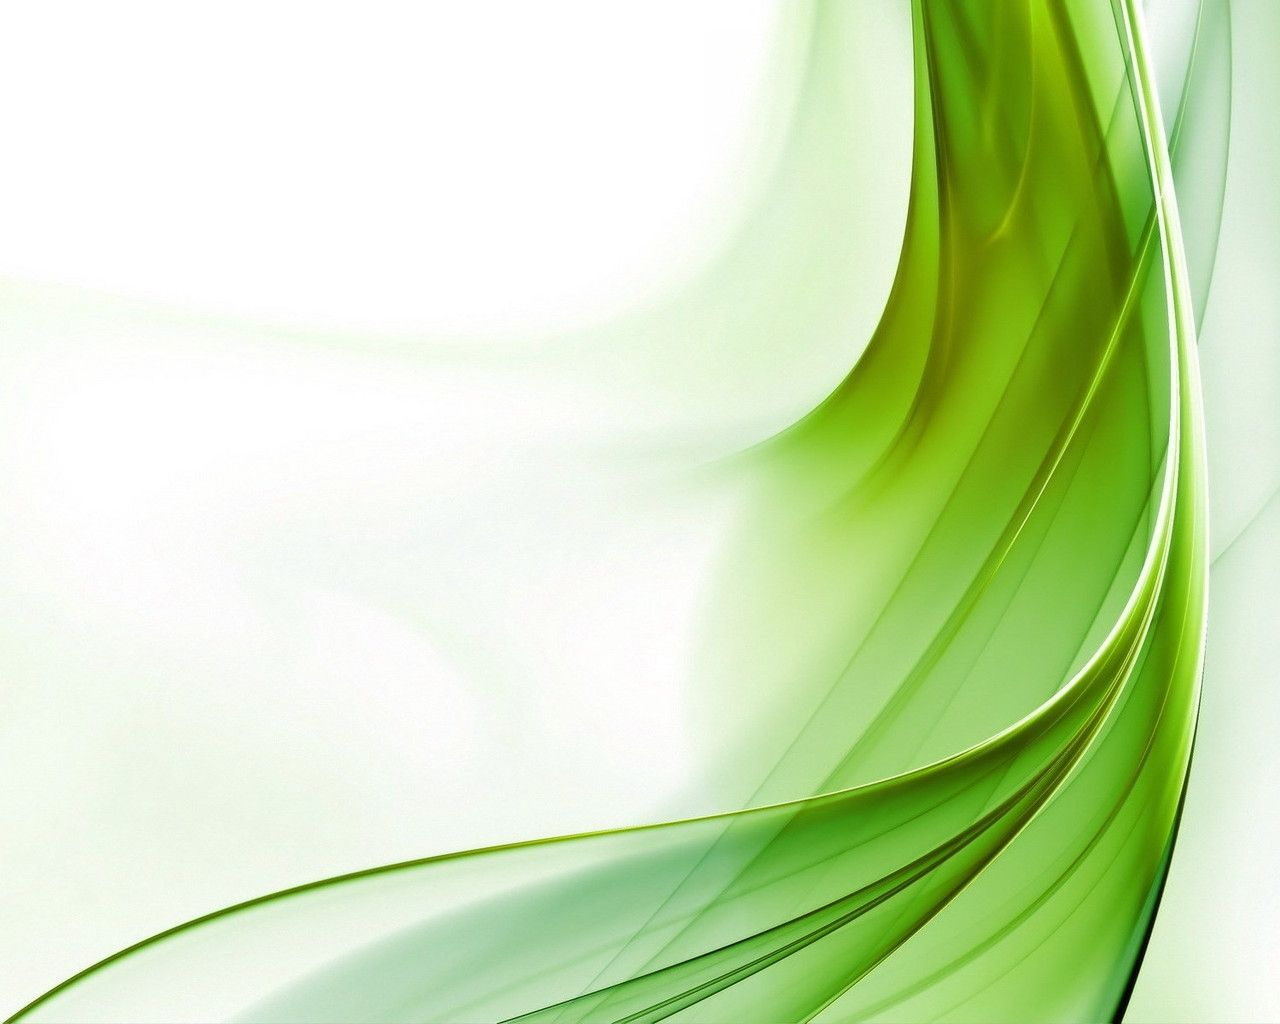 Green And White Backgrounds Wallpaperpulse Background Design